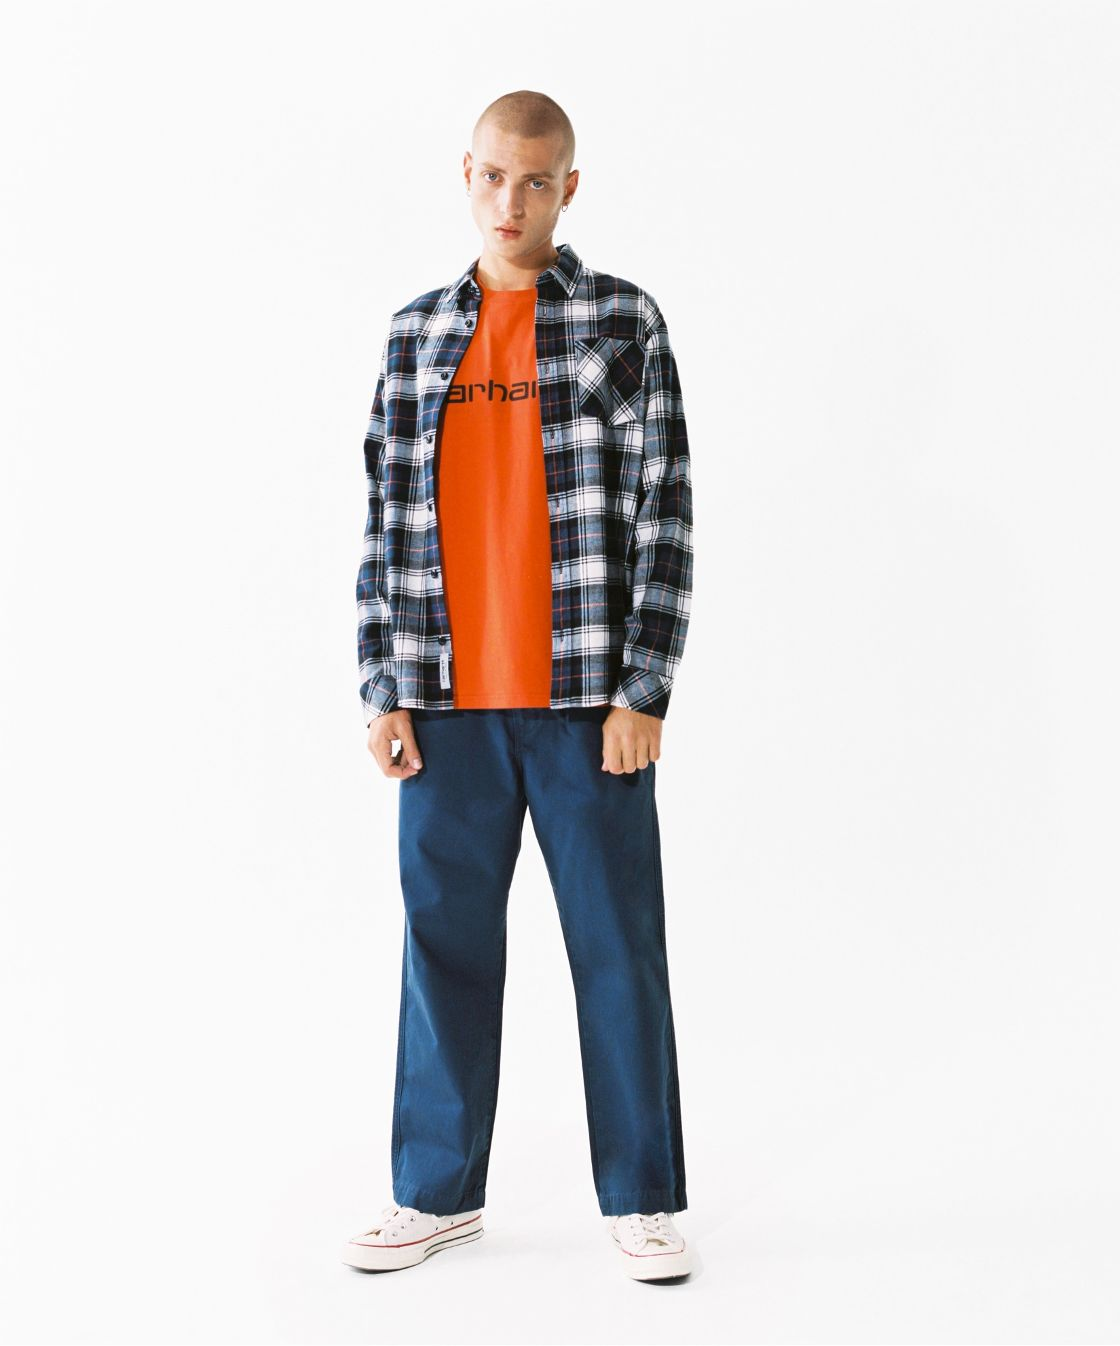 Bostwick Shirt & Dallas Pant